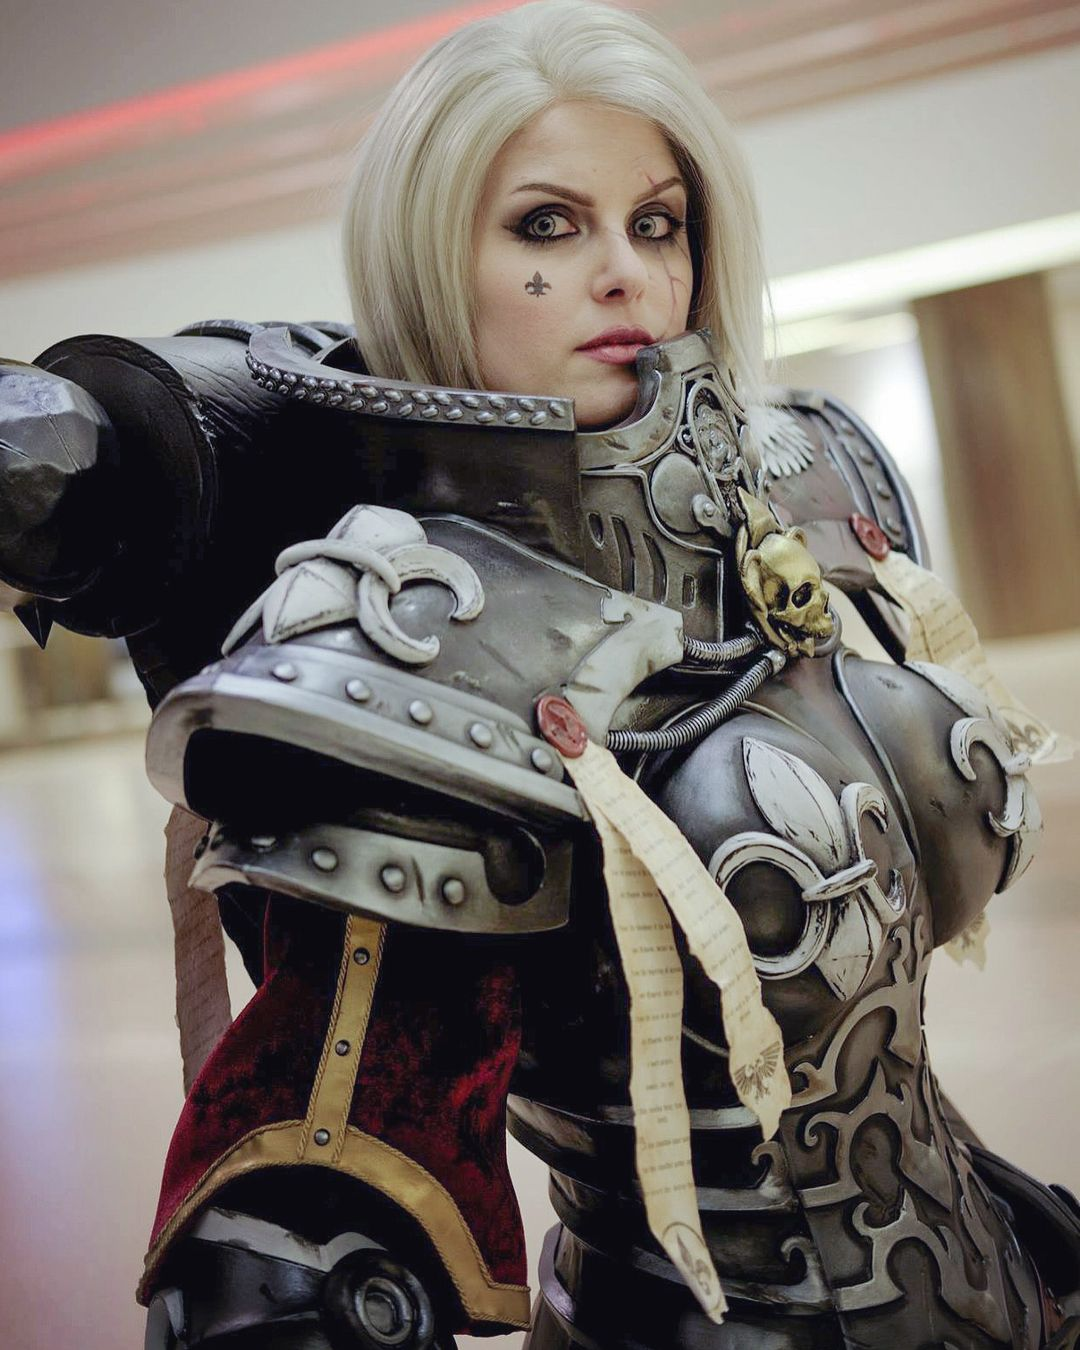 photography,photography Fantasy cosplay, Best cosplay